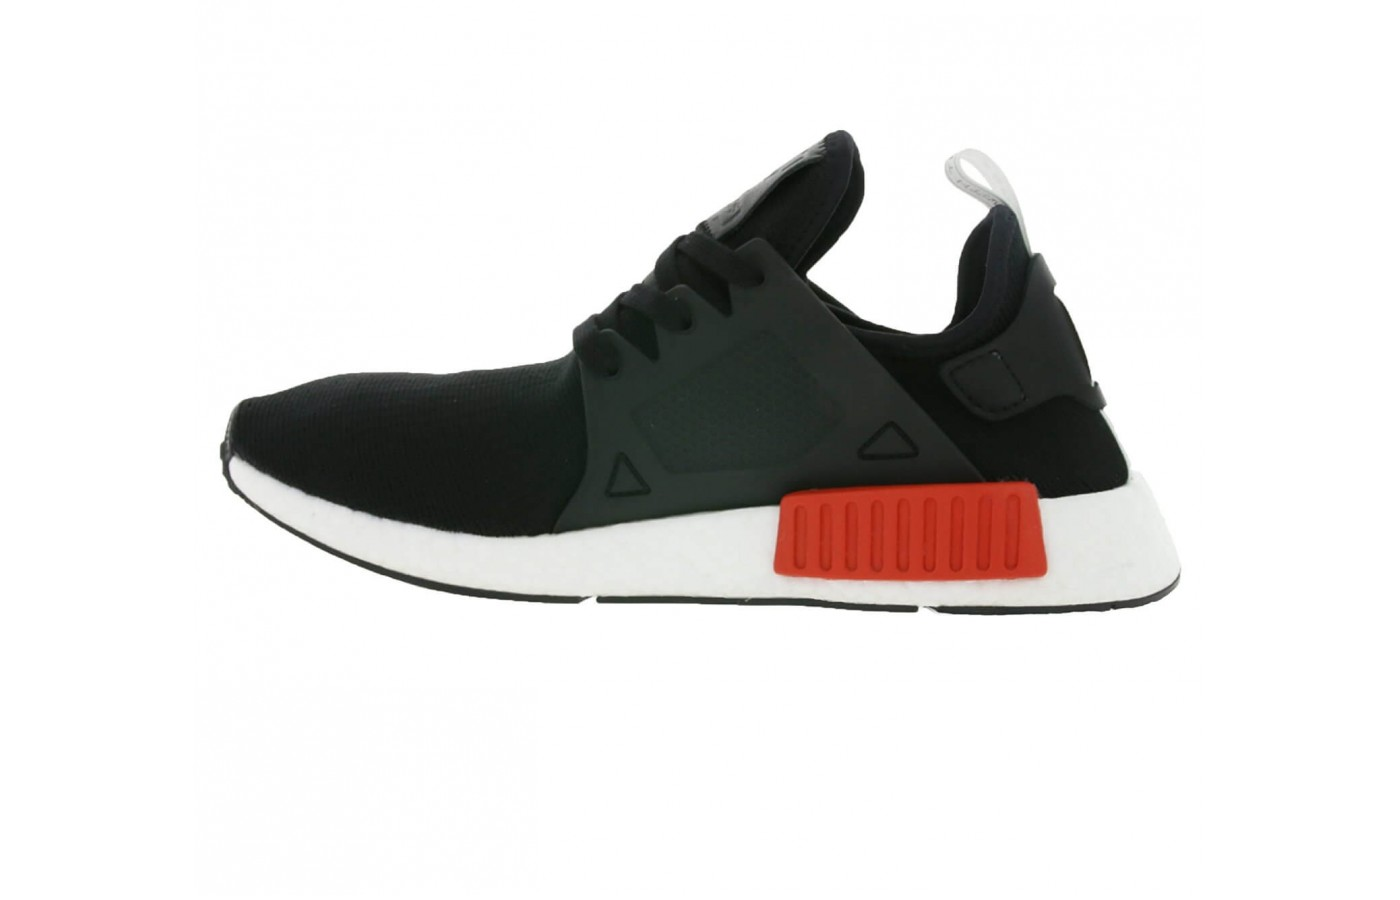 Adidas NMD XR1 Reviewed for Performance and Quality